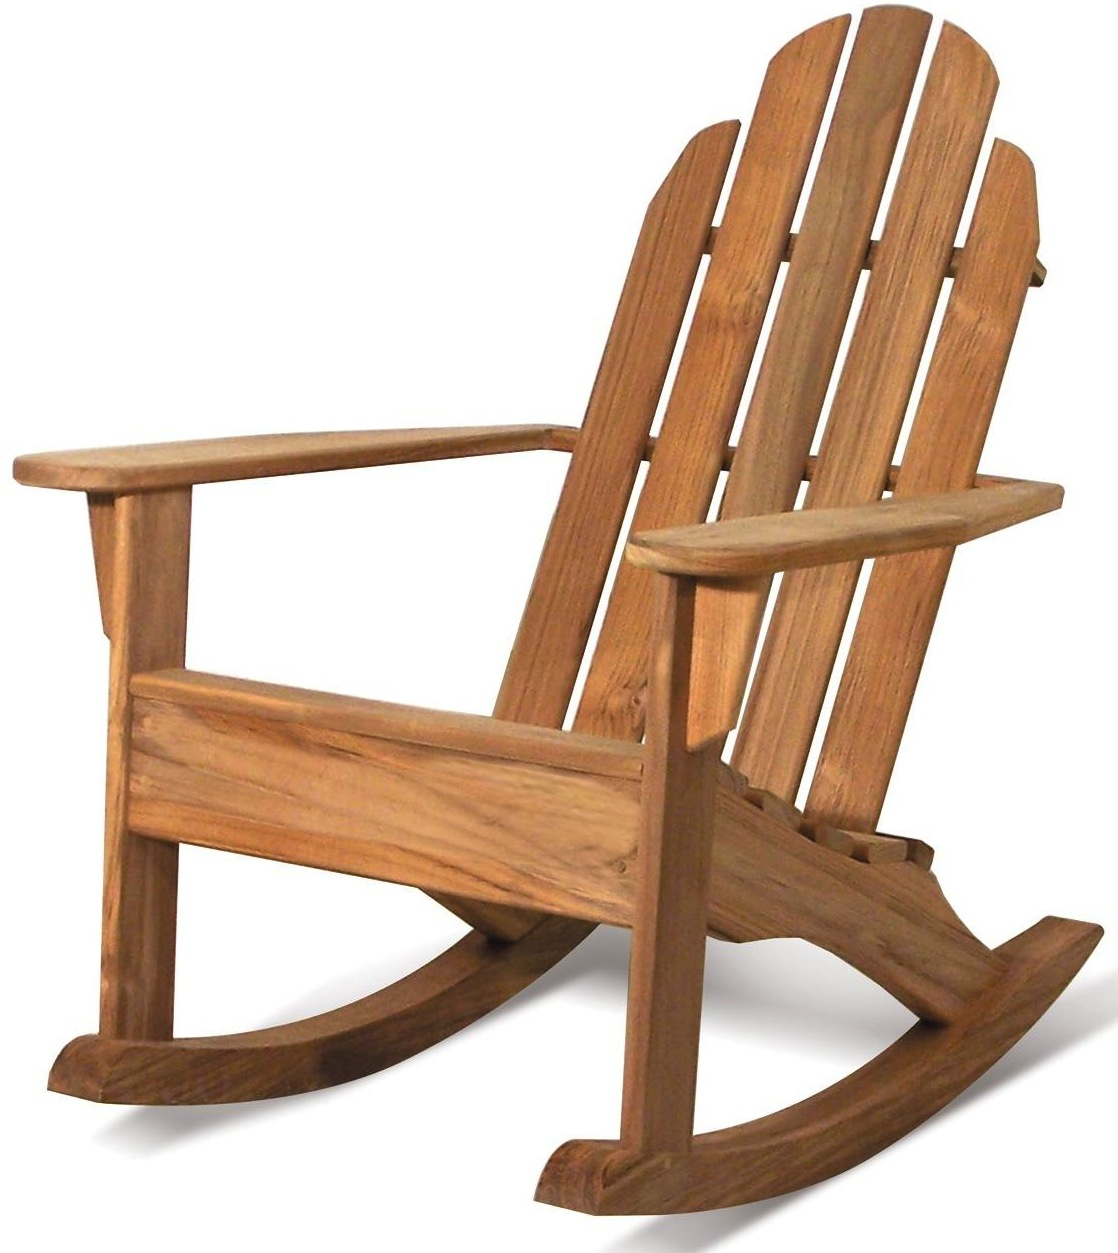 Adirondack Rocking Chair Plans Teak Adirondack Rocking Chairs Teak Adirondack Chair Central